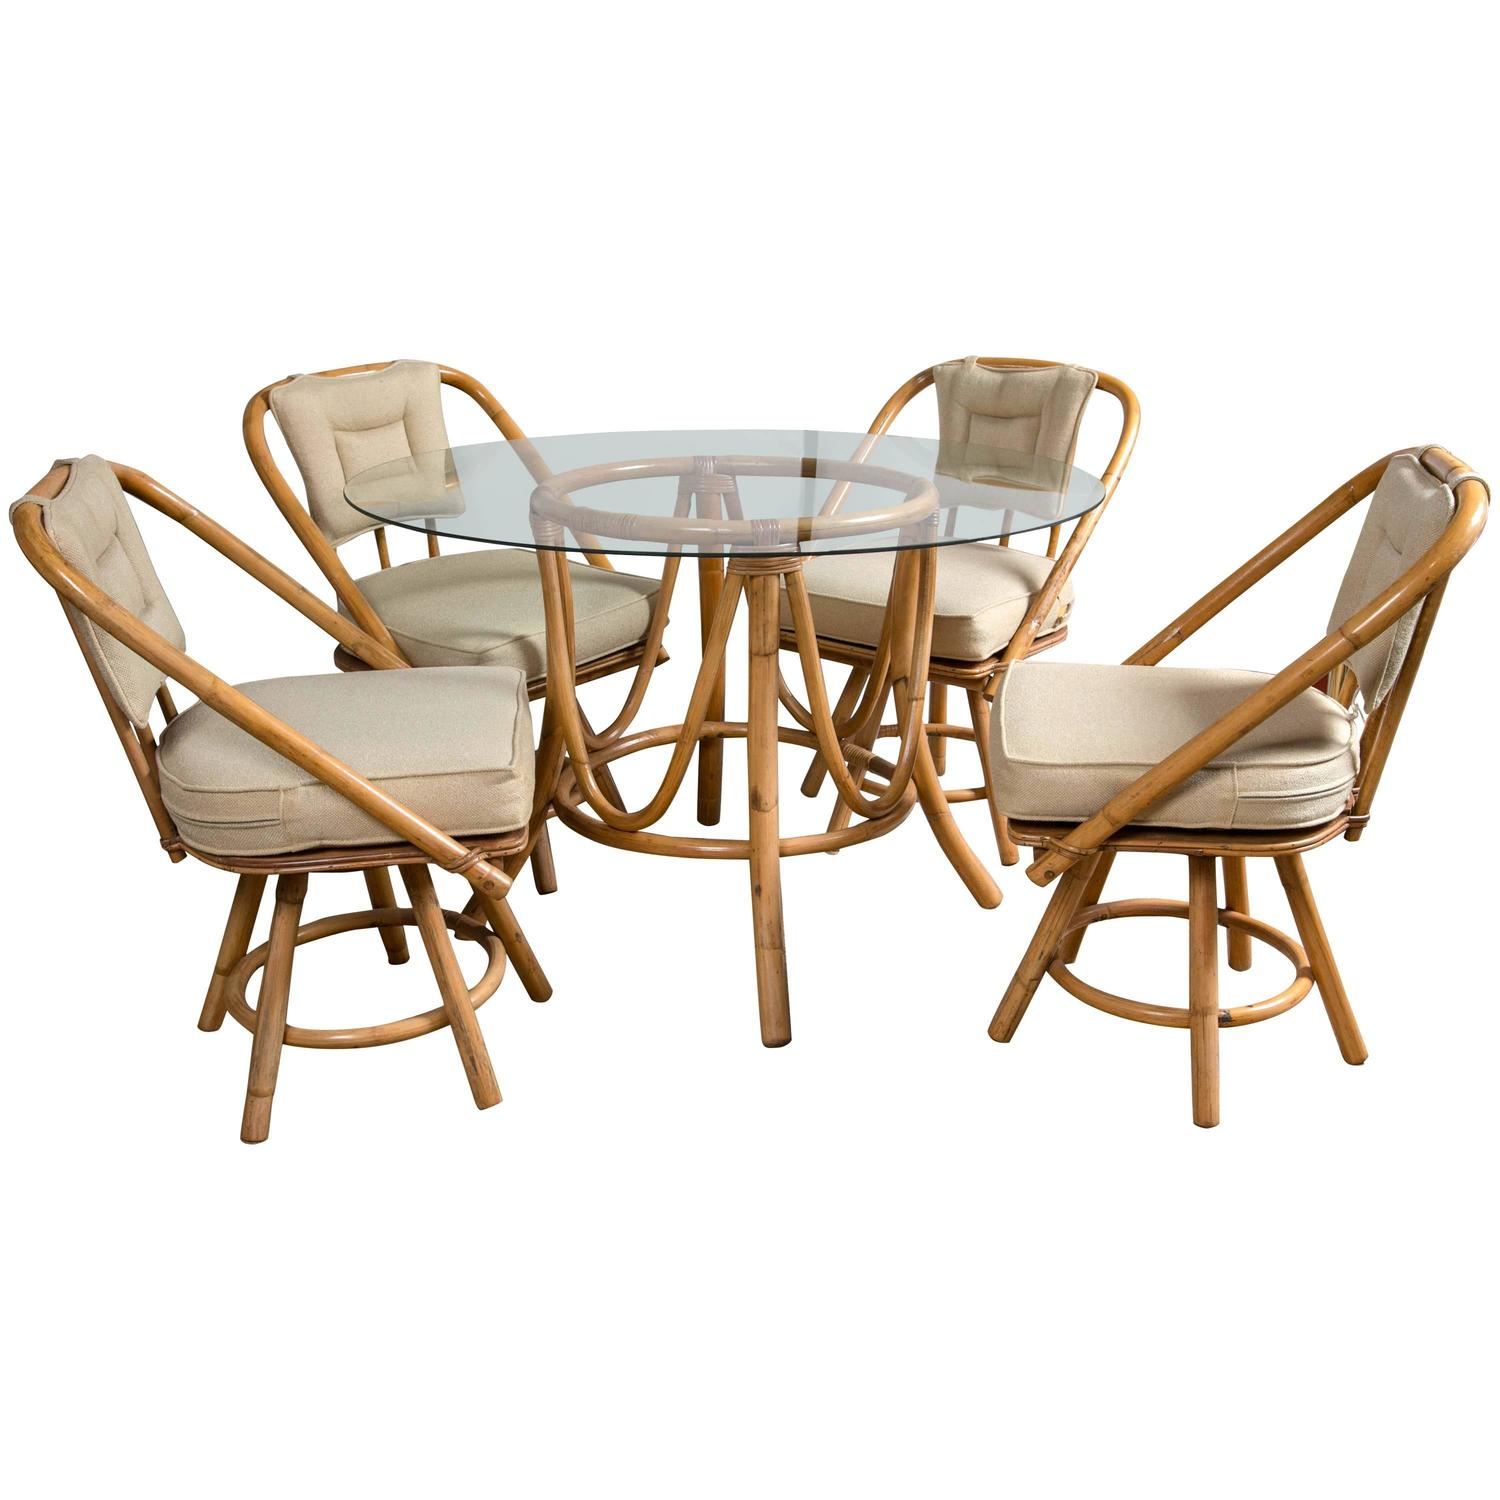 vintage table and chairs ruffled chair covers bamboo rattan round dining at